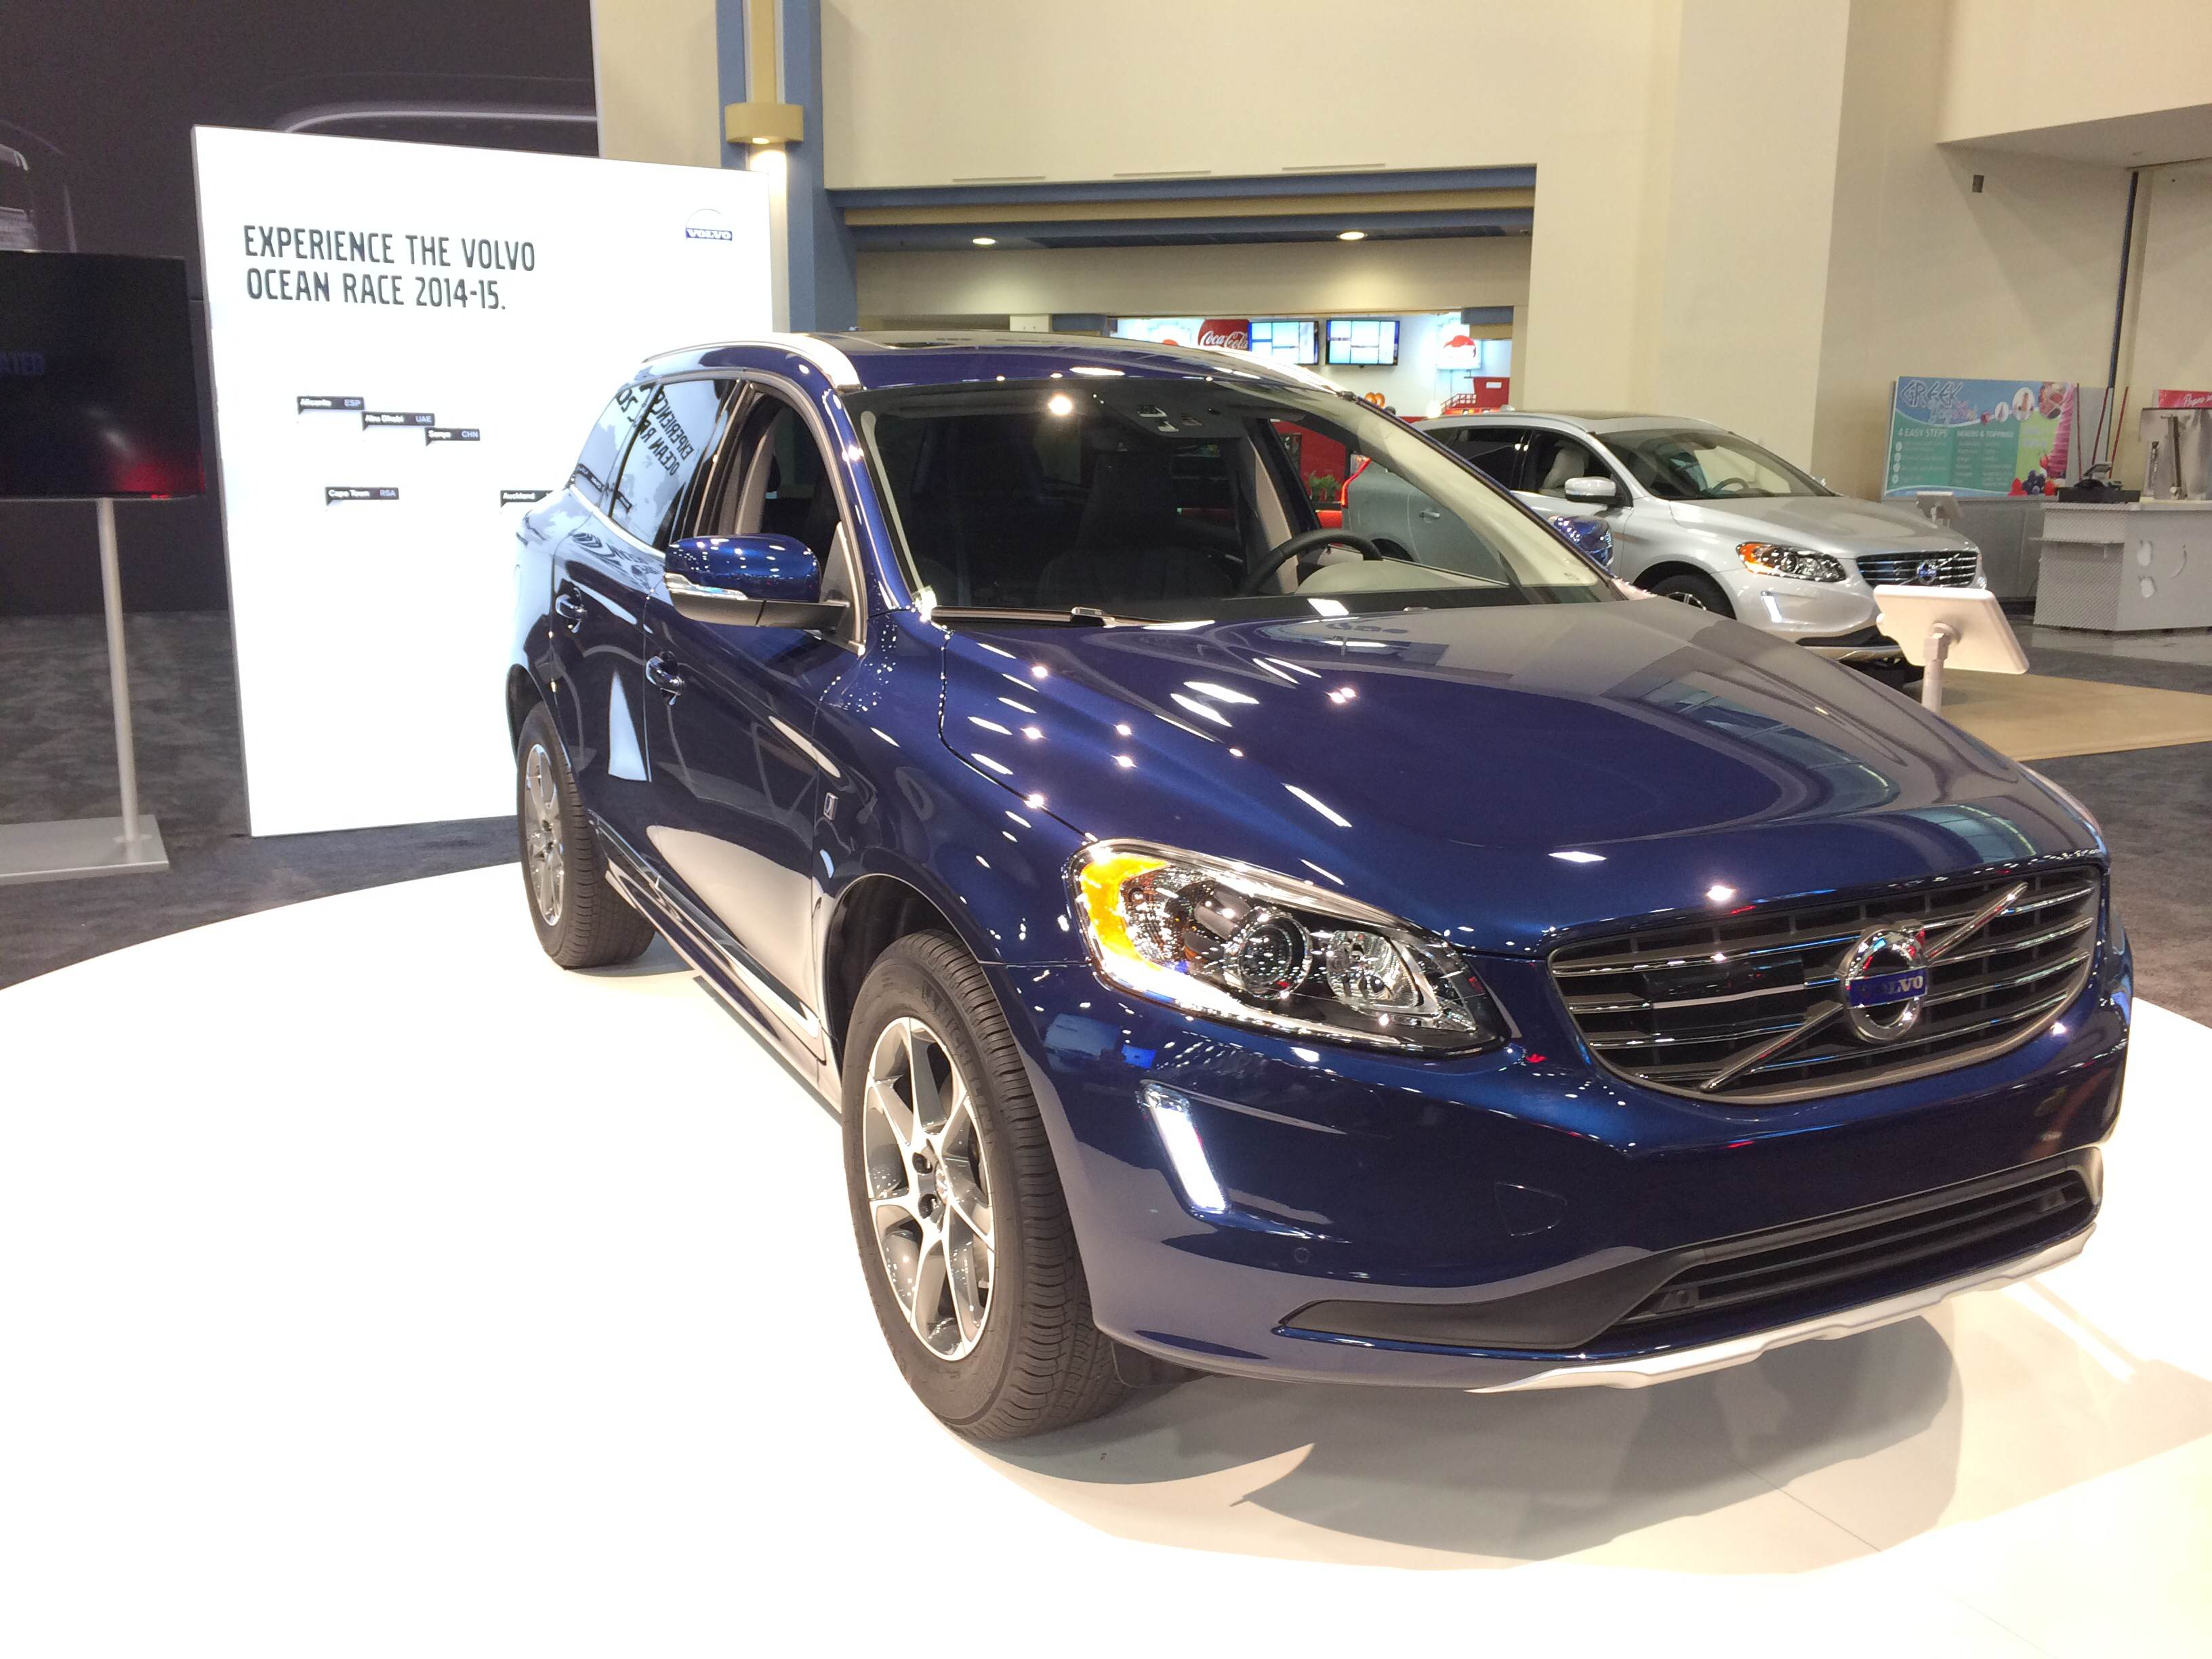 The Volvo Ocean Race XC60 at the Miami International Auto Show